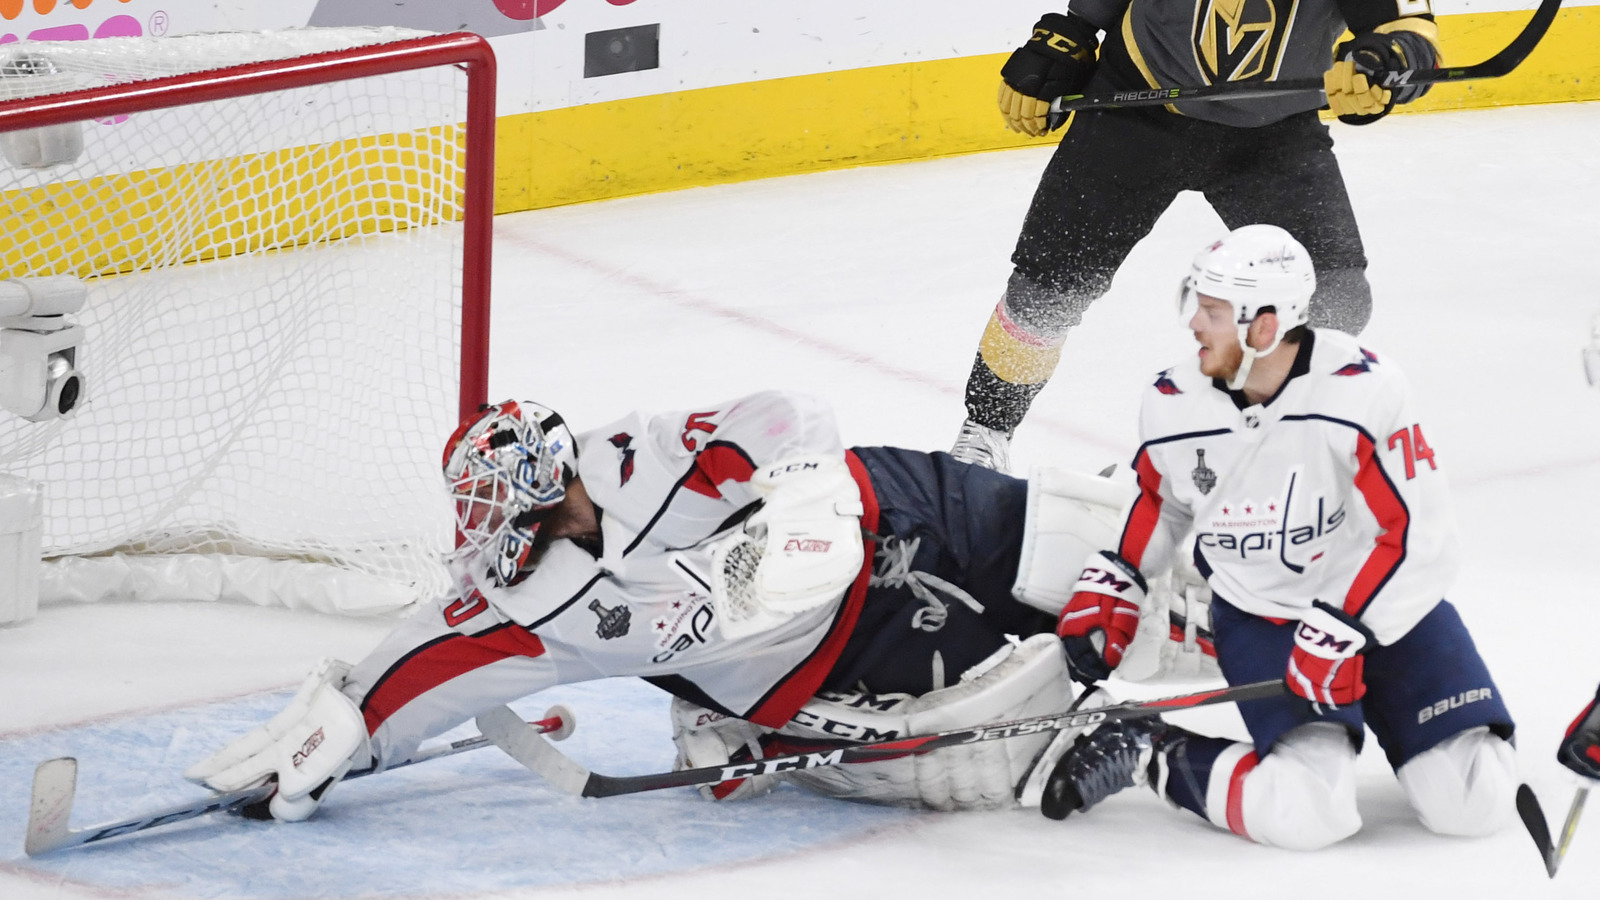 Washington Capitals Goalie Braden Holtby Makes Incredible Save to Even Stanley Cup Finals 1-1